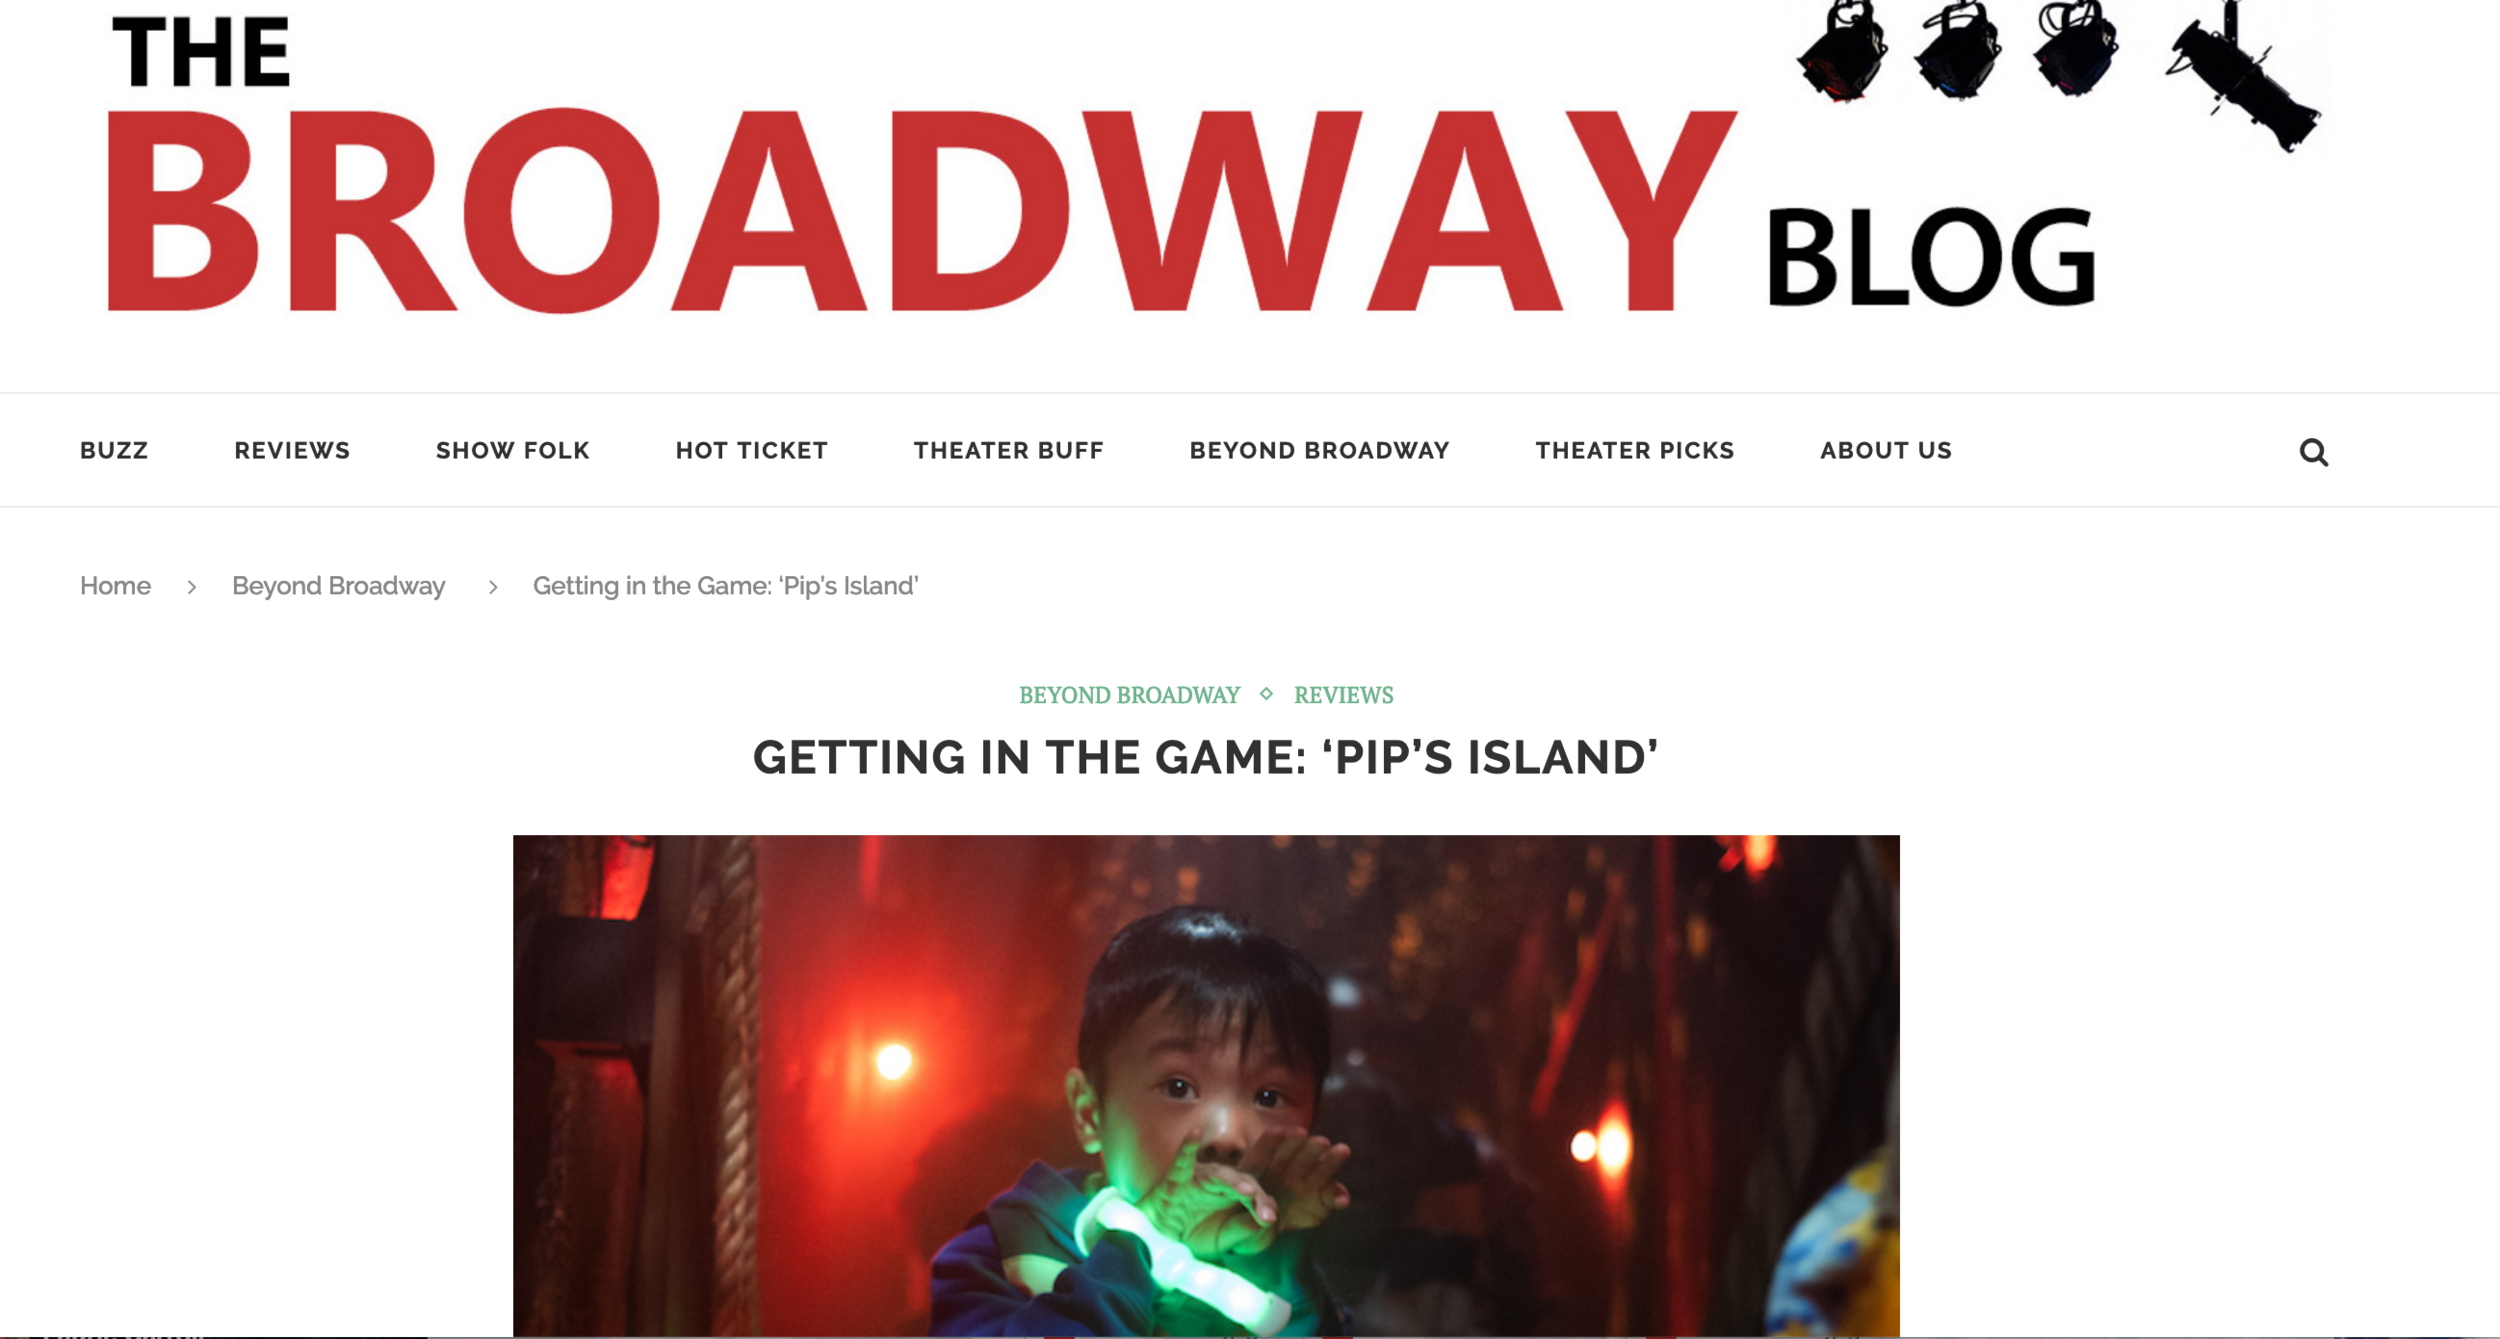 The Broadway Blog